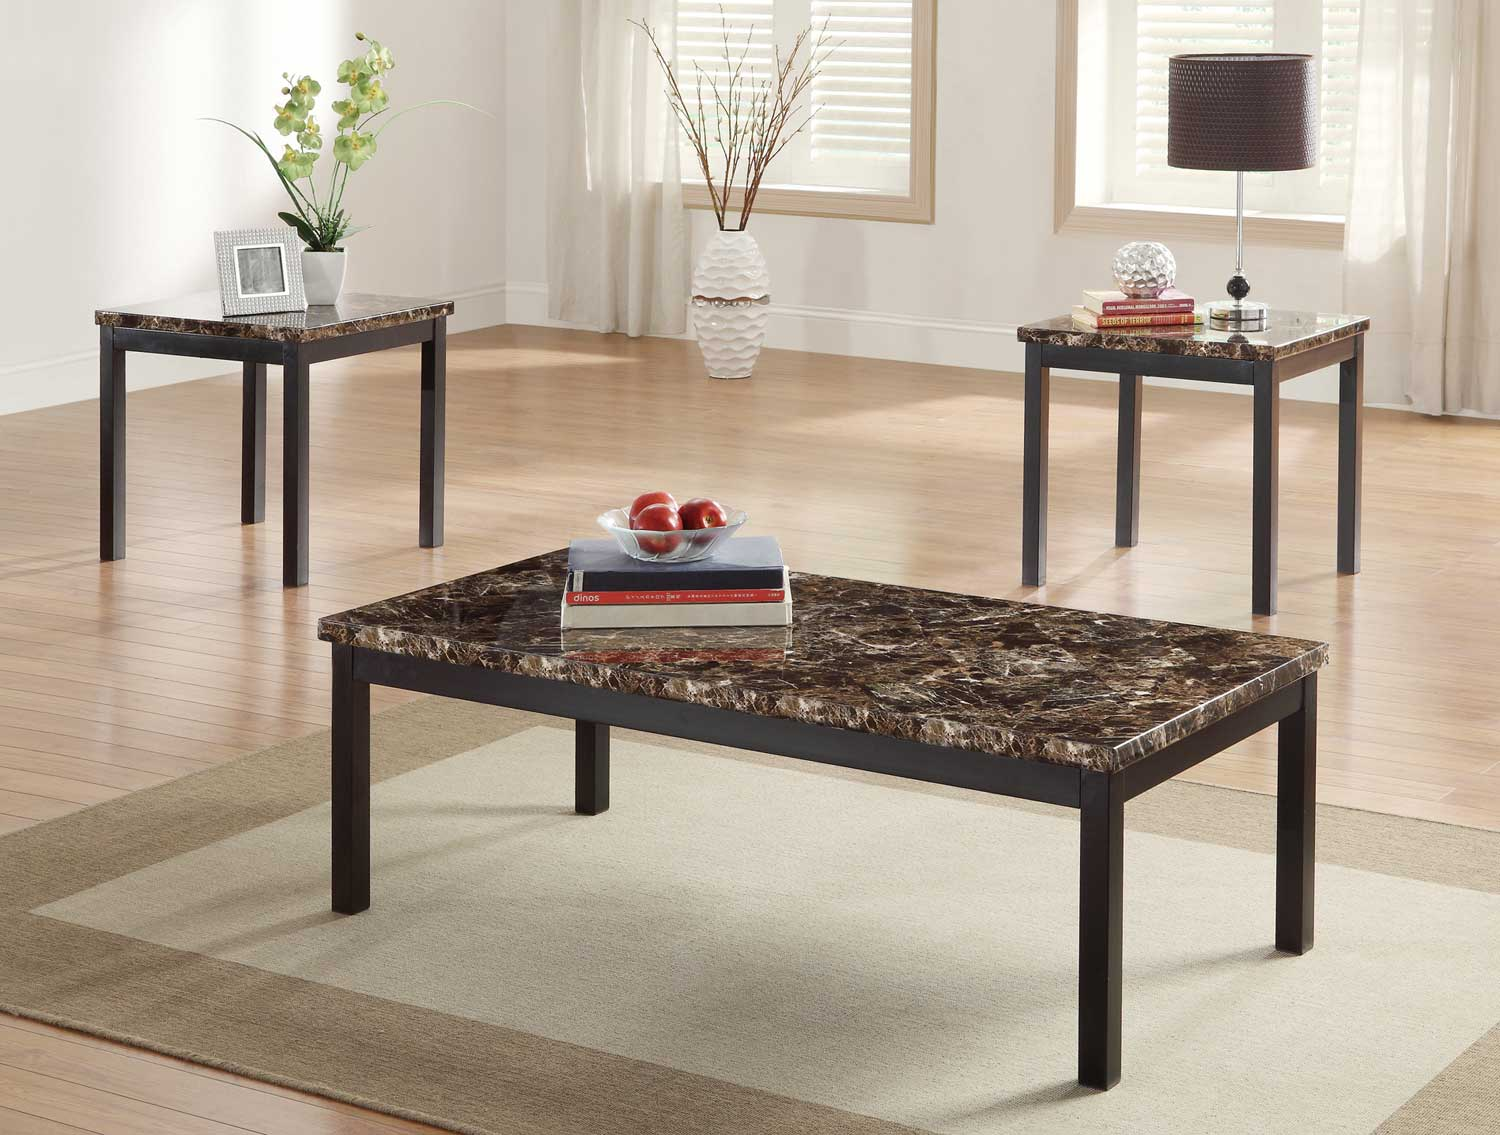 Homelegance Tempe 3-Piece Occasional Tables - Faux Marble Top - Black Metal